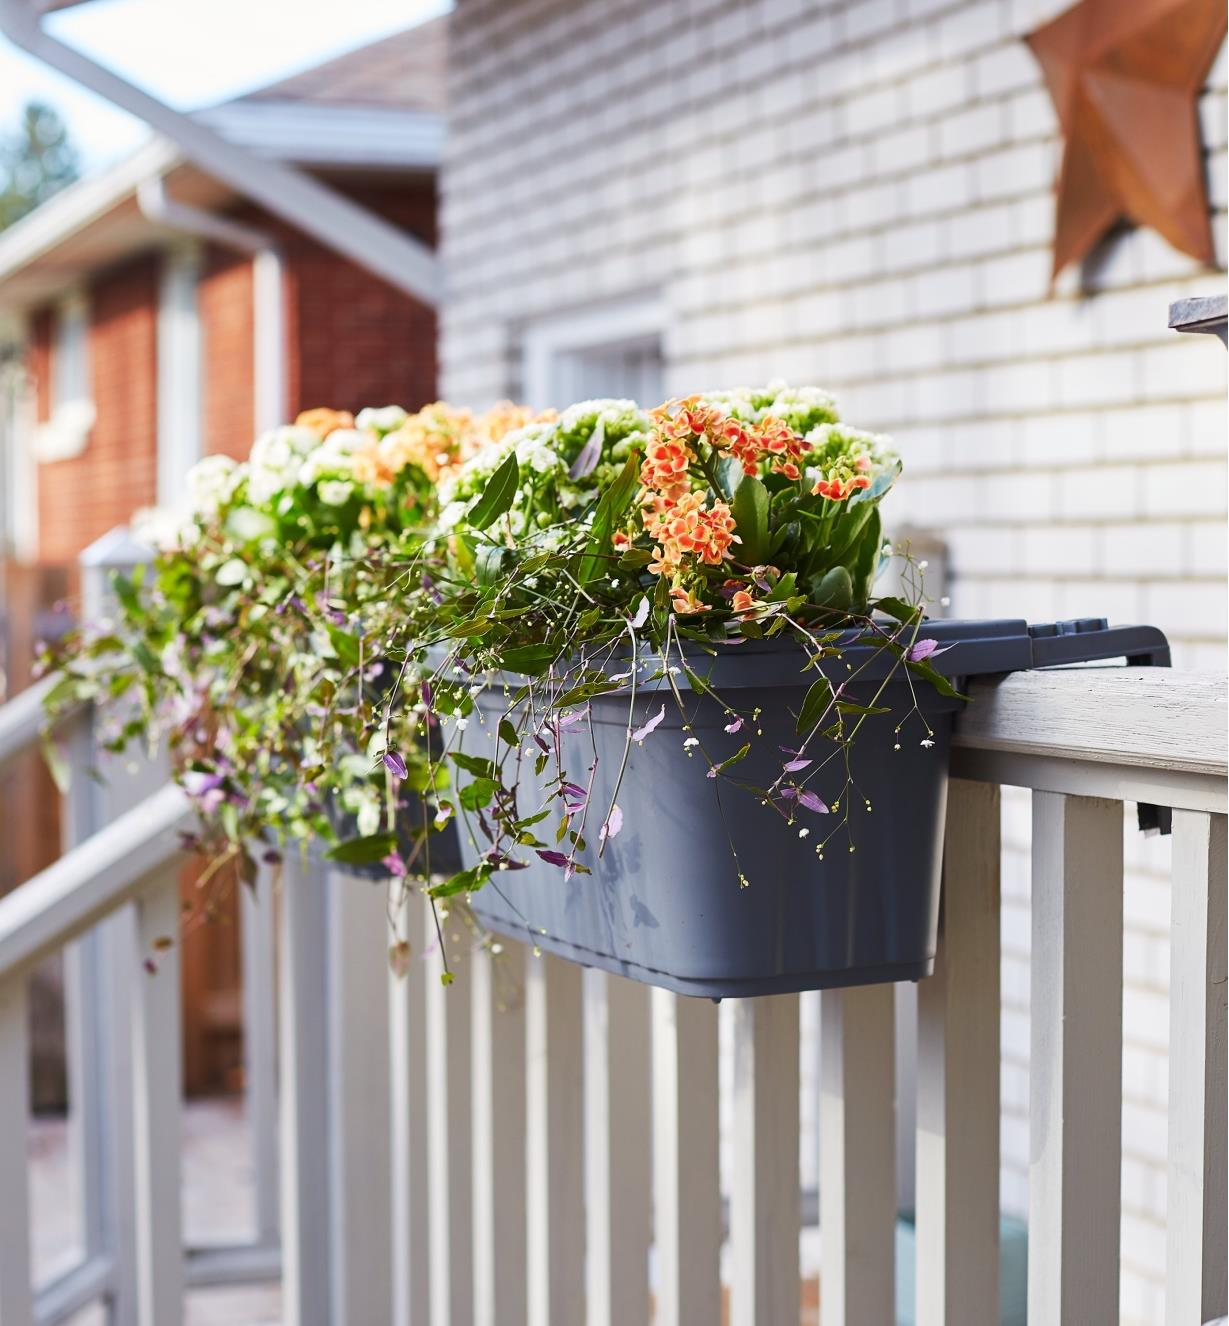 A Fence and Railing Planter mounted on a railing